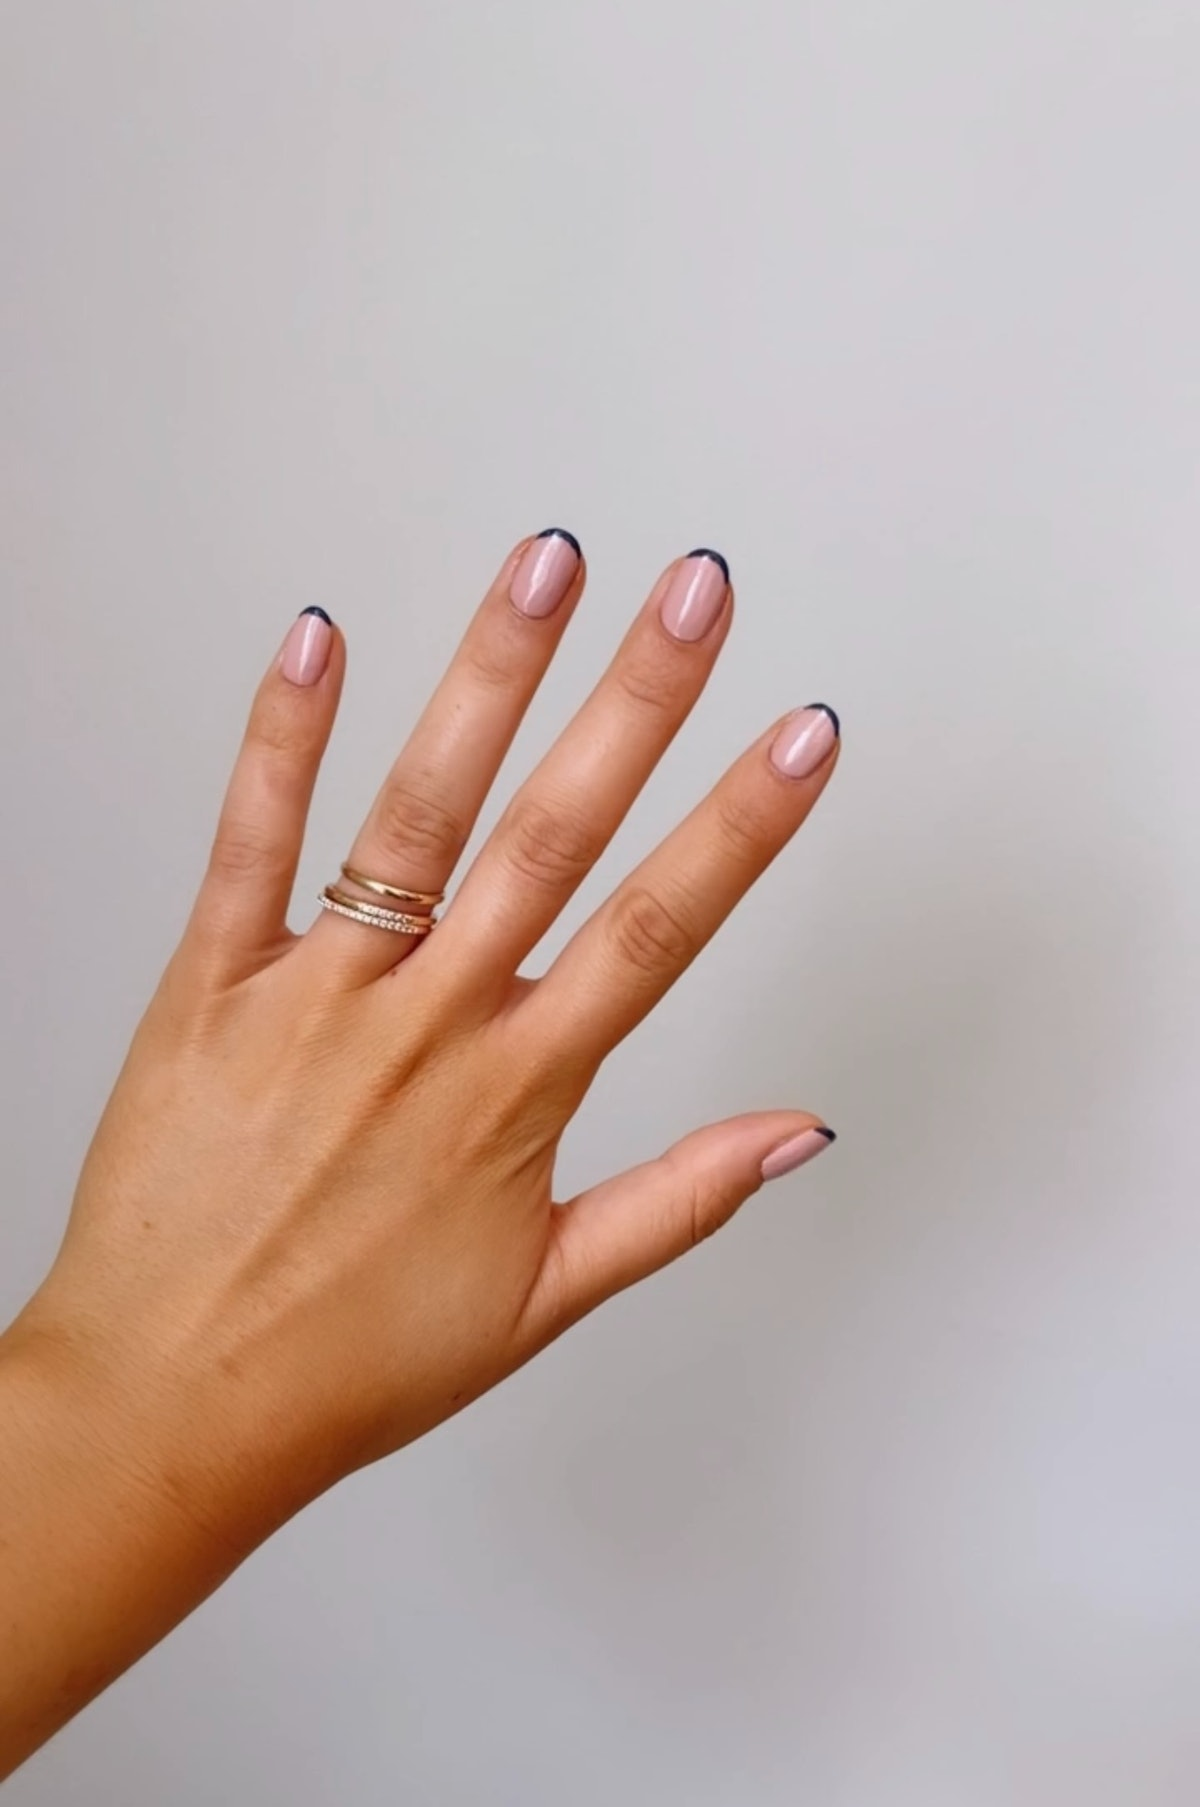 A navy blue French manicure is one of fall 2021's biggest nail trends as a twist on the classic Fren...